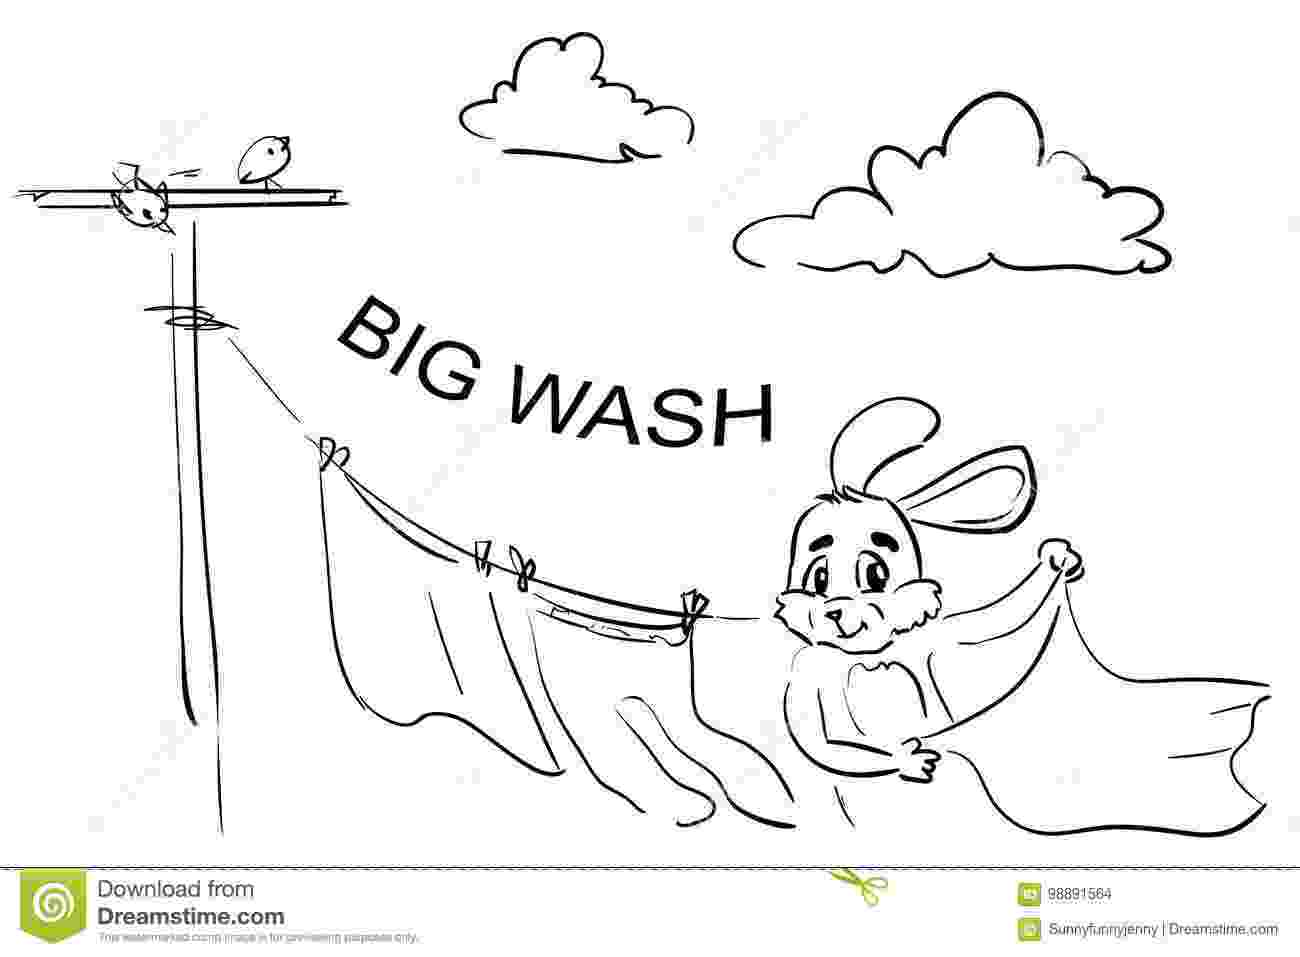 laundry coloring pages 14 best images about laundry room on pinterest pages laundry coloring